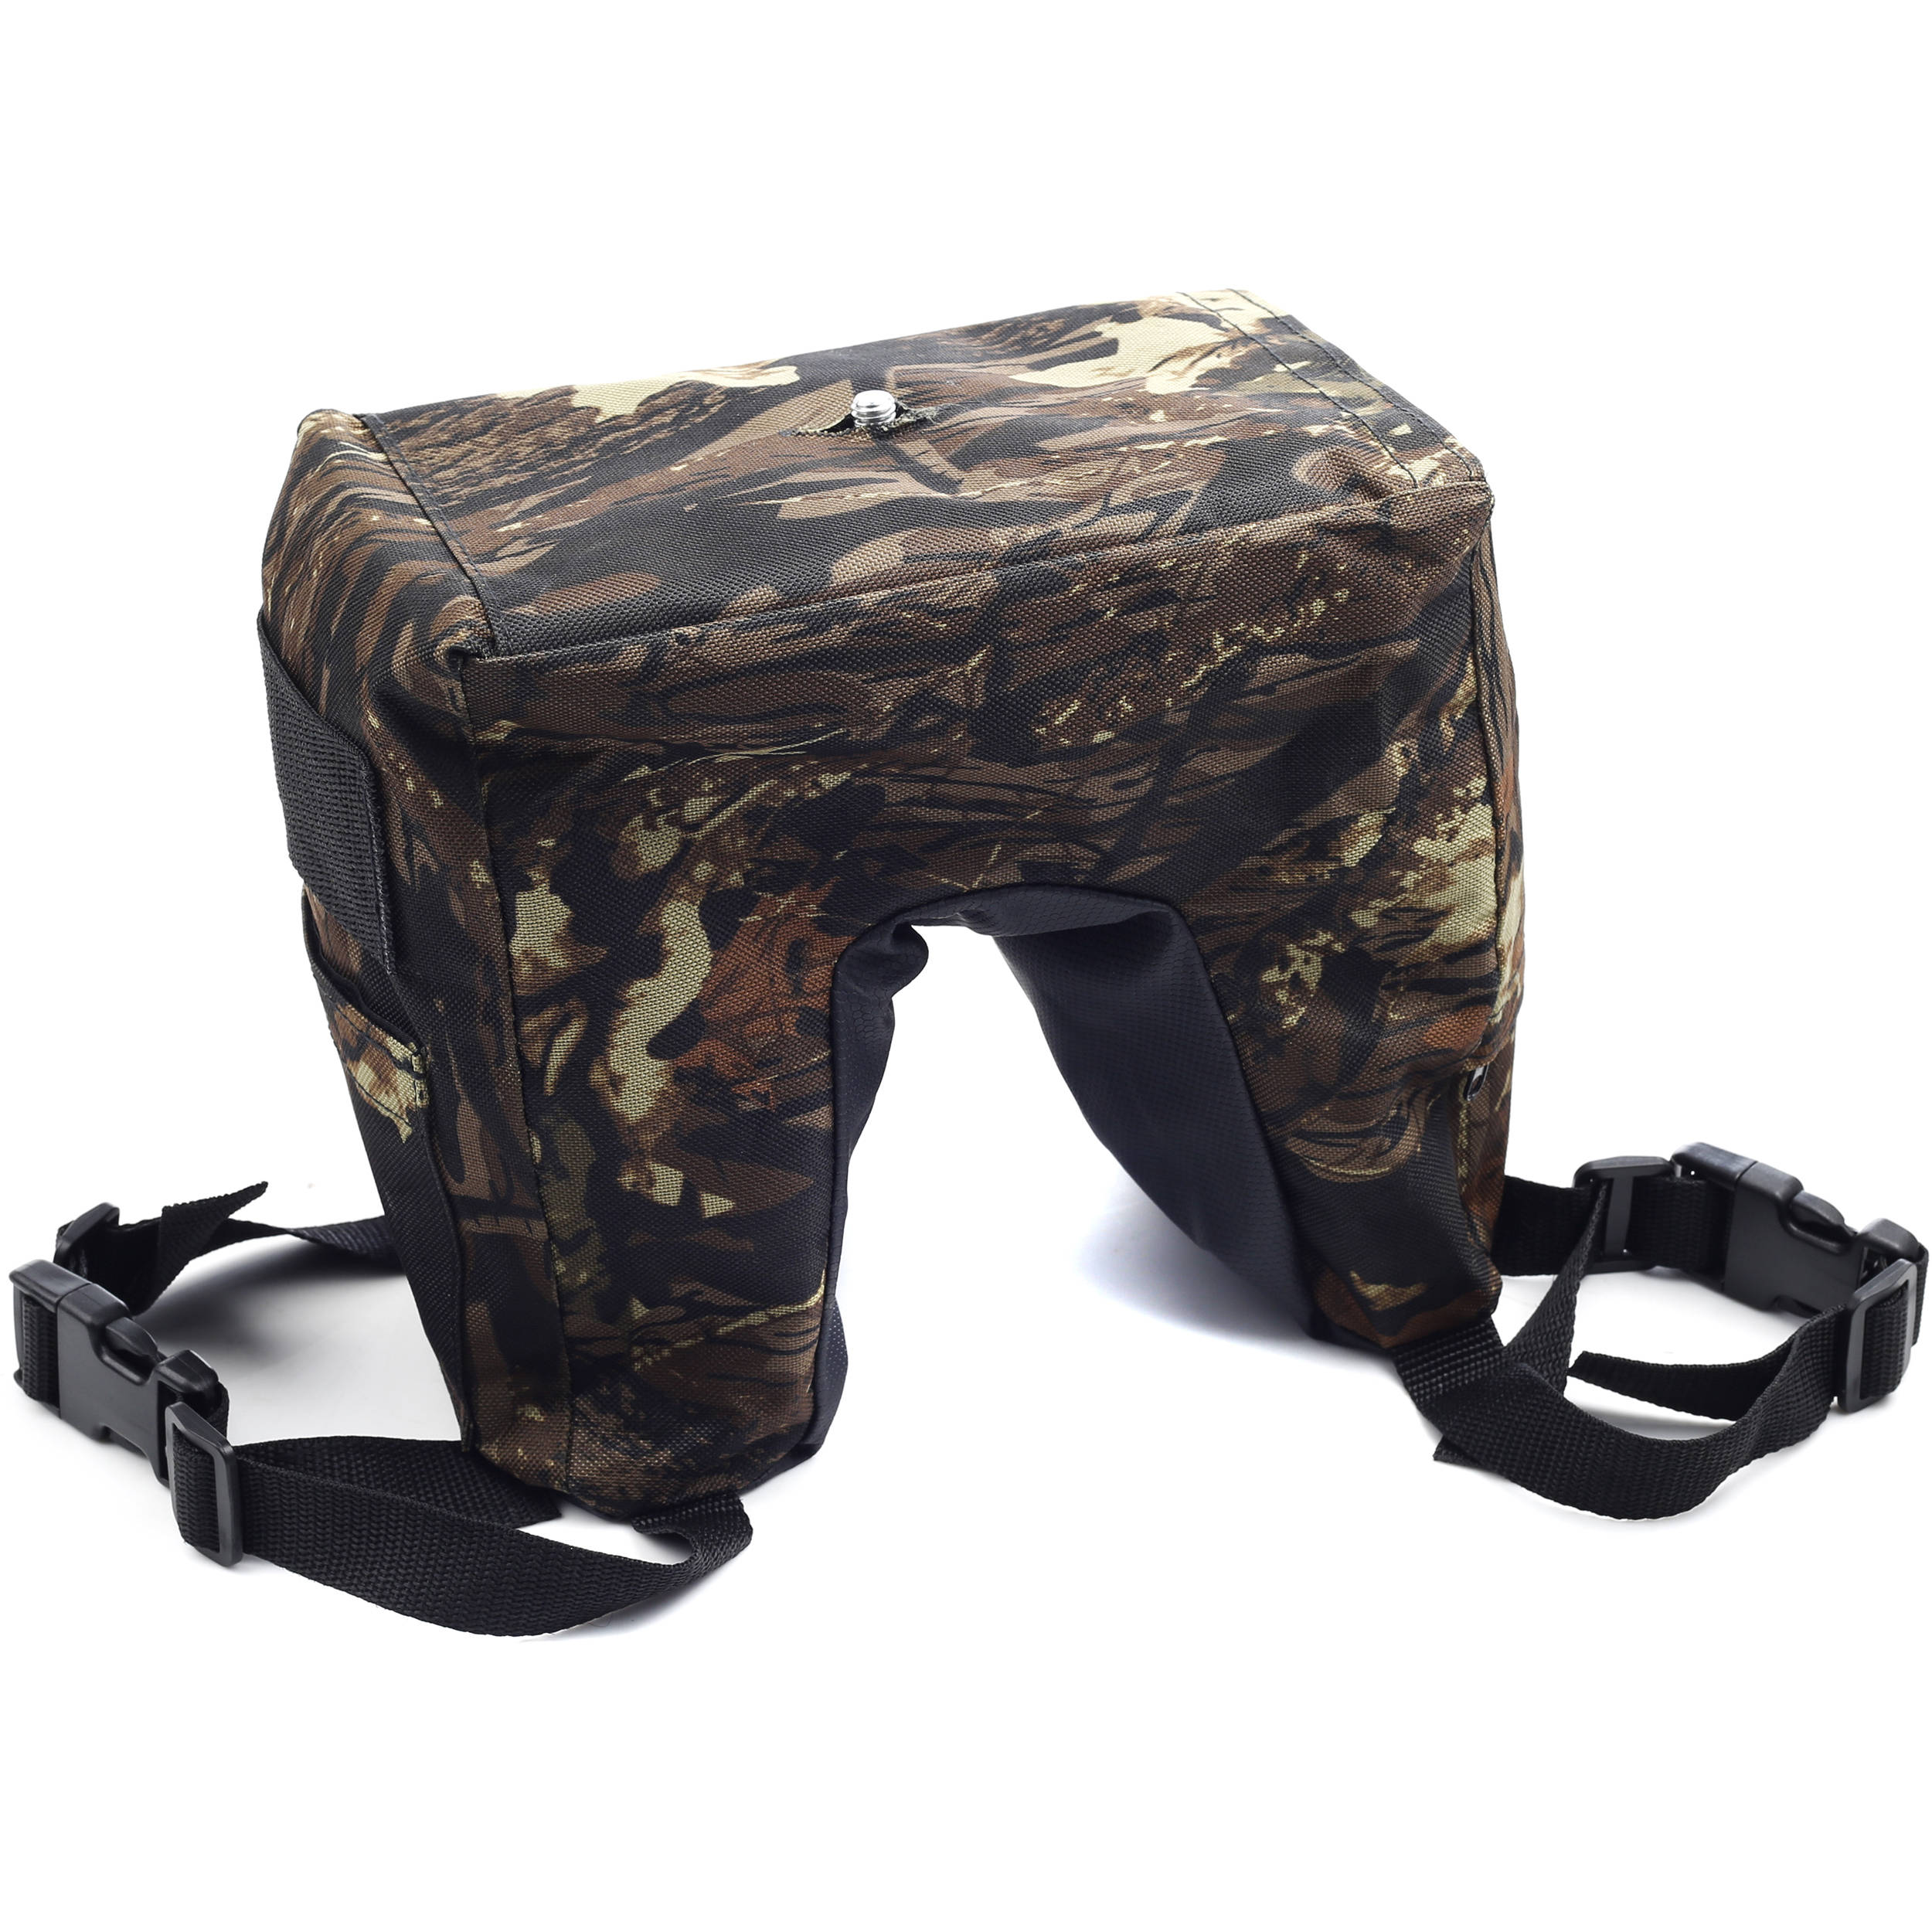 Movo Photo THB04 Camouflage Camera Lens Bean Bag with Head THB04